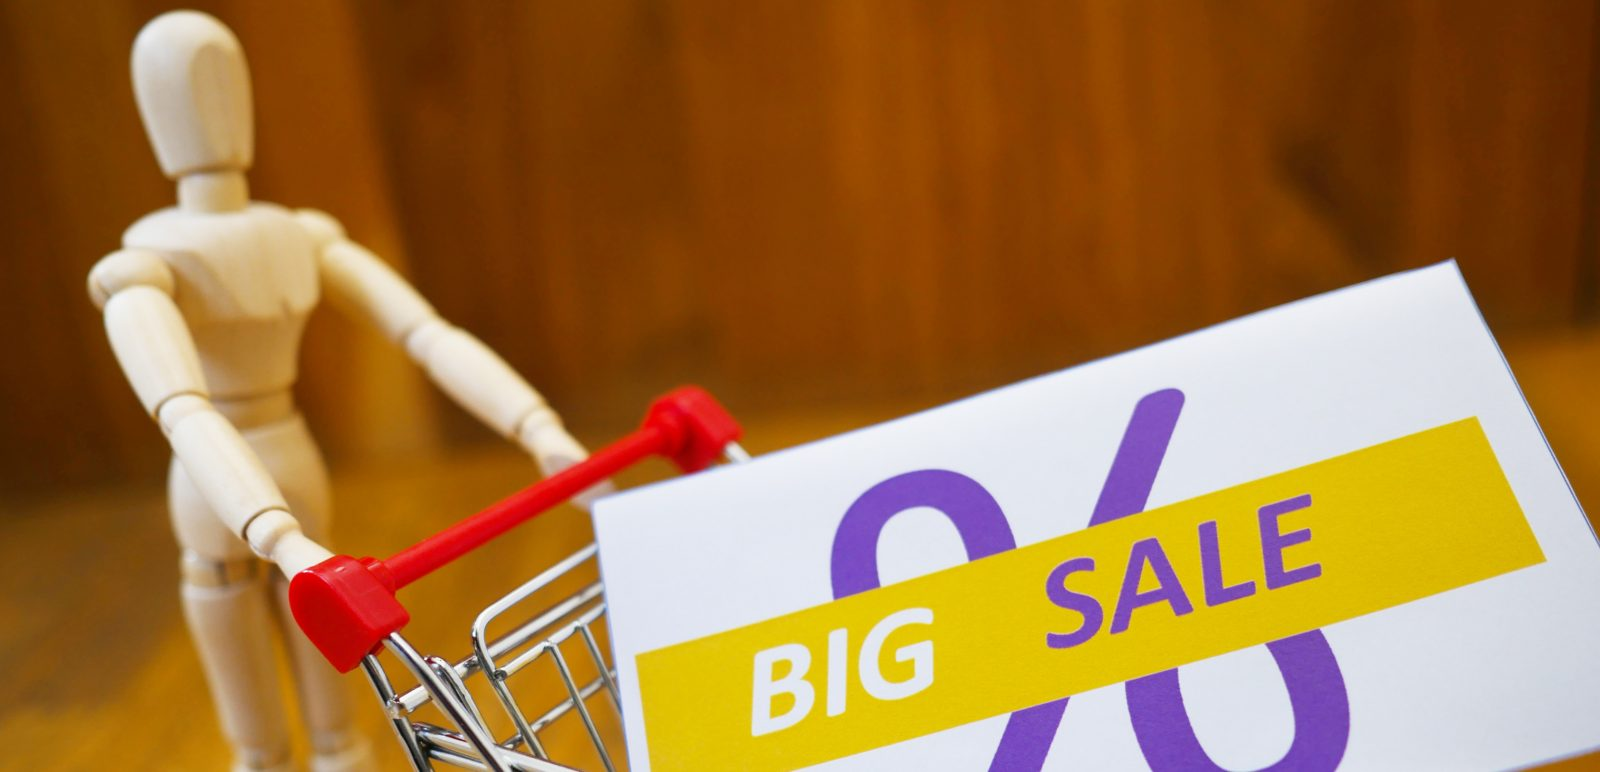 A photo (by Mein Deal on Unsplash) of a wooden mannequin pushing a shopping trolley